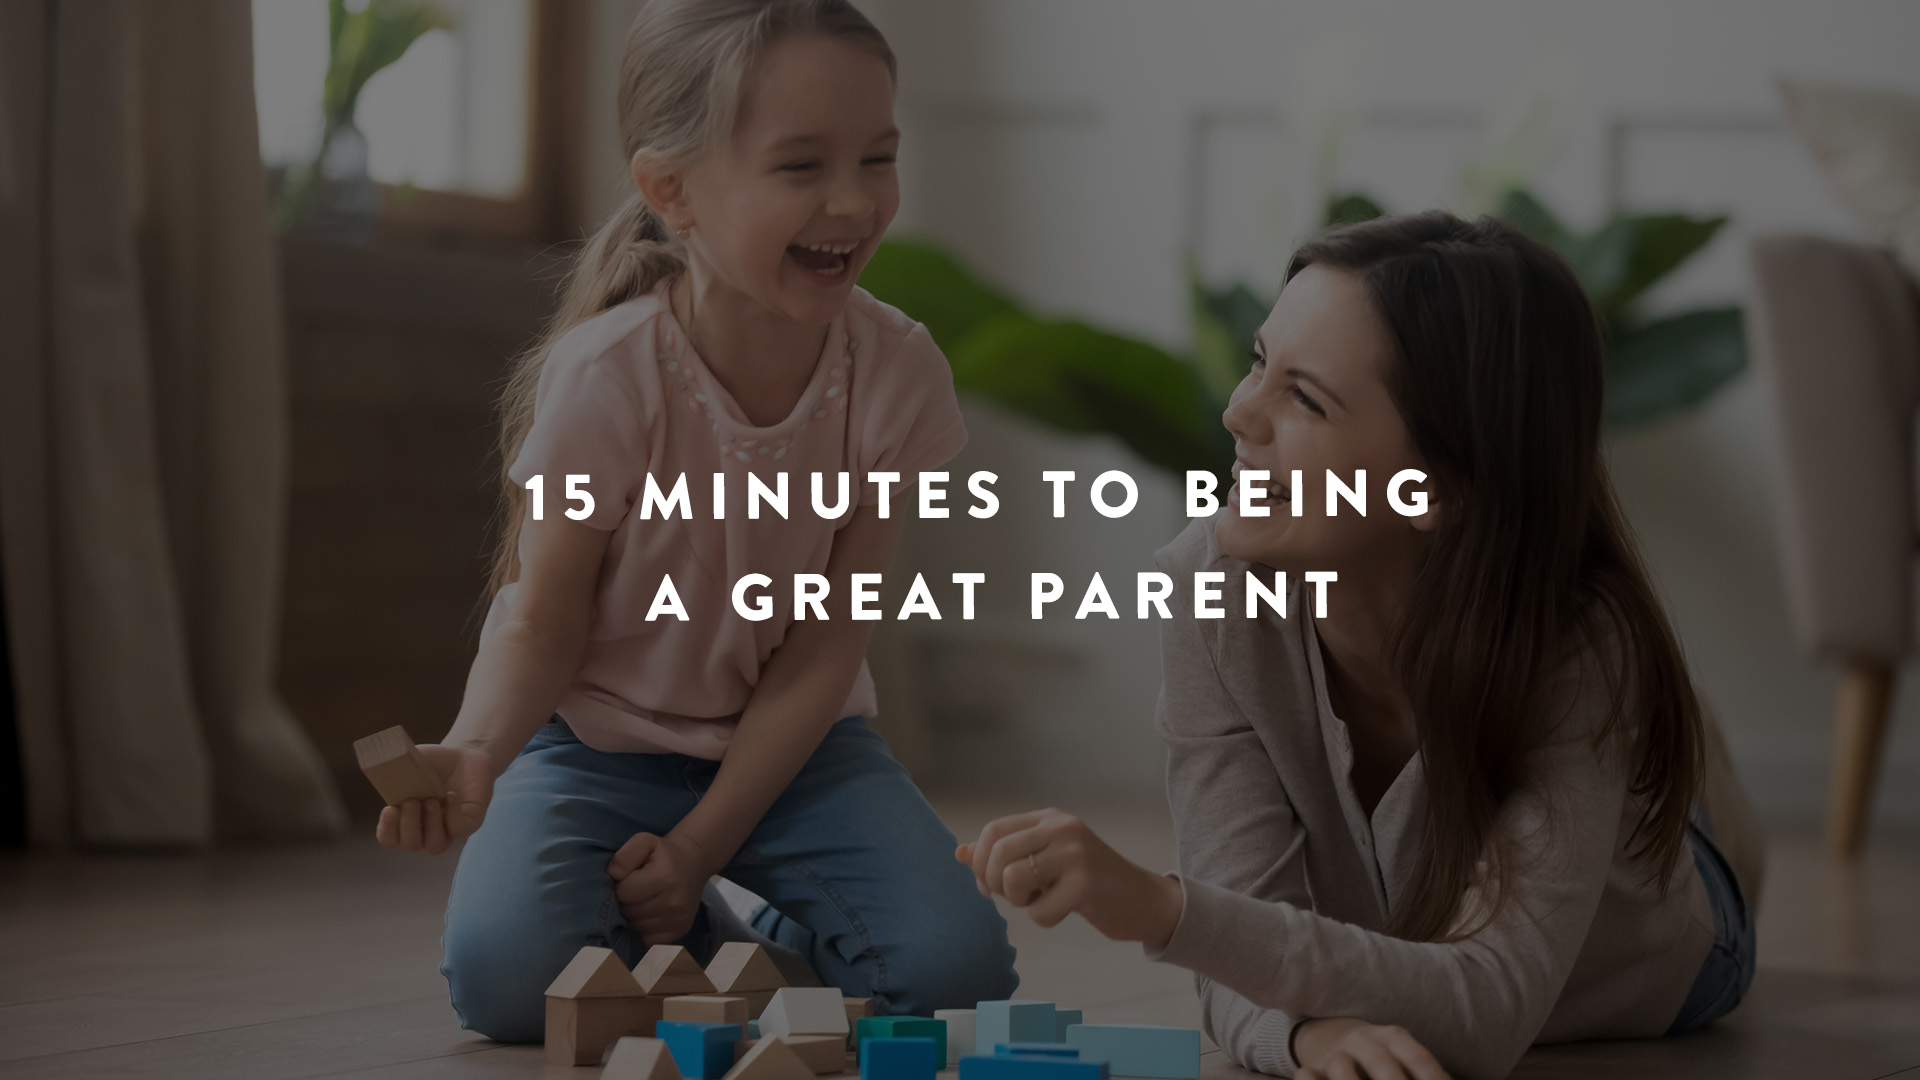 15 Minutes to being a great parent